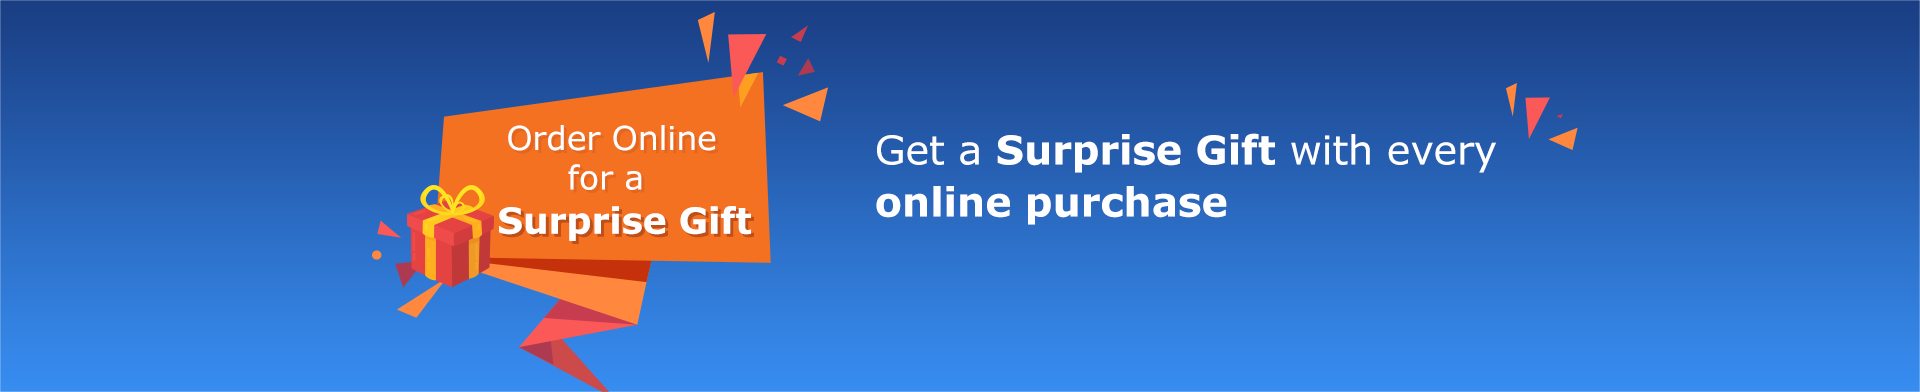 a surprise gift with any online purchase